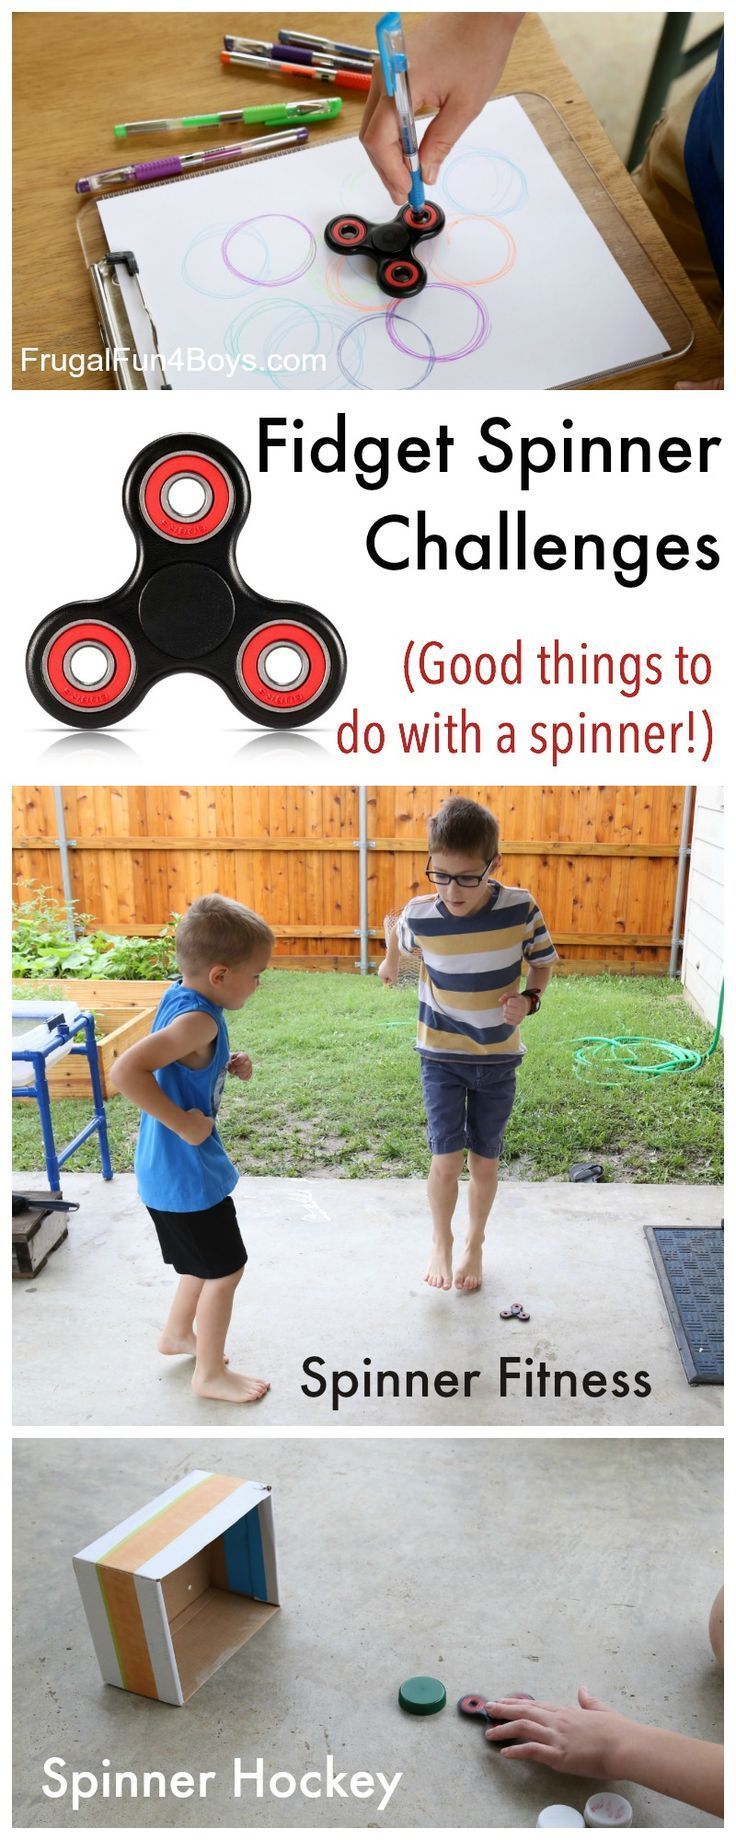 Fidget Spinner Challenge: GOOD Things for Kids to Do with a Fidget Spinner!